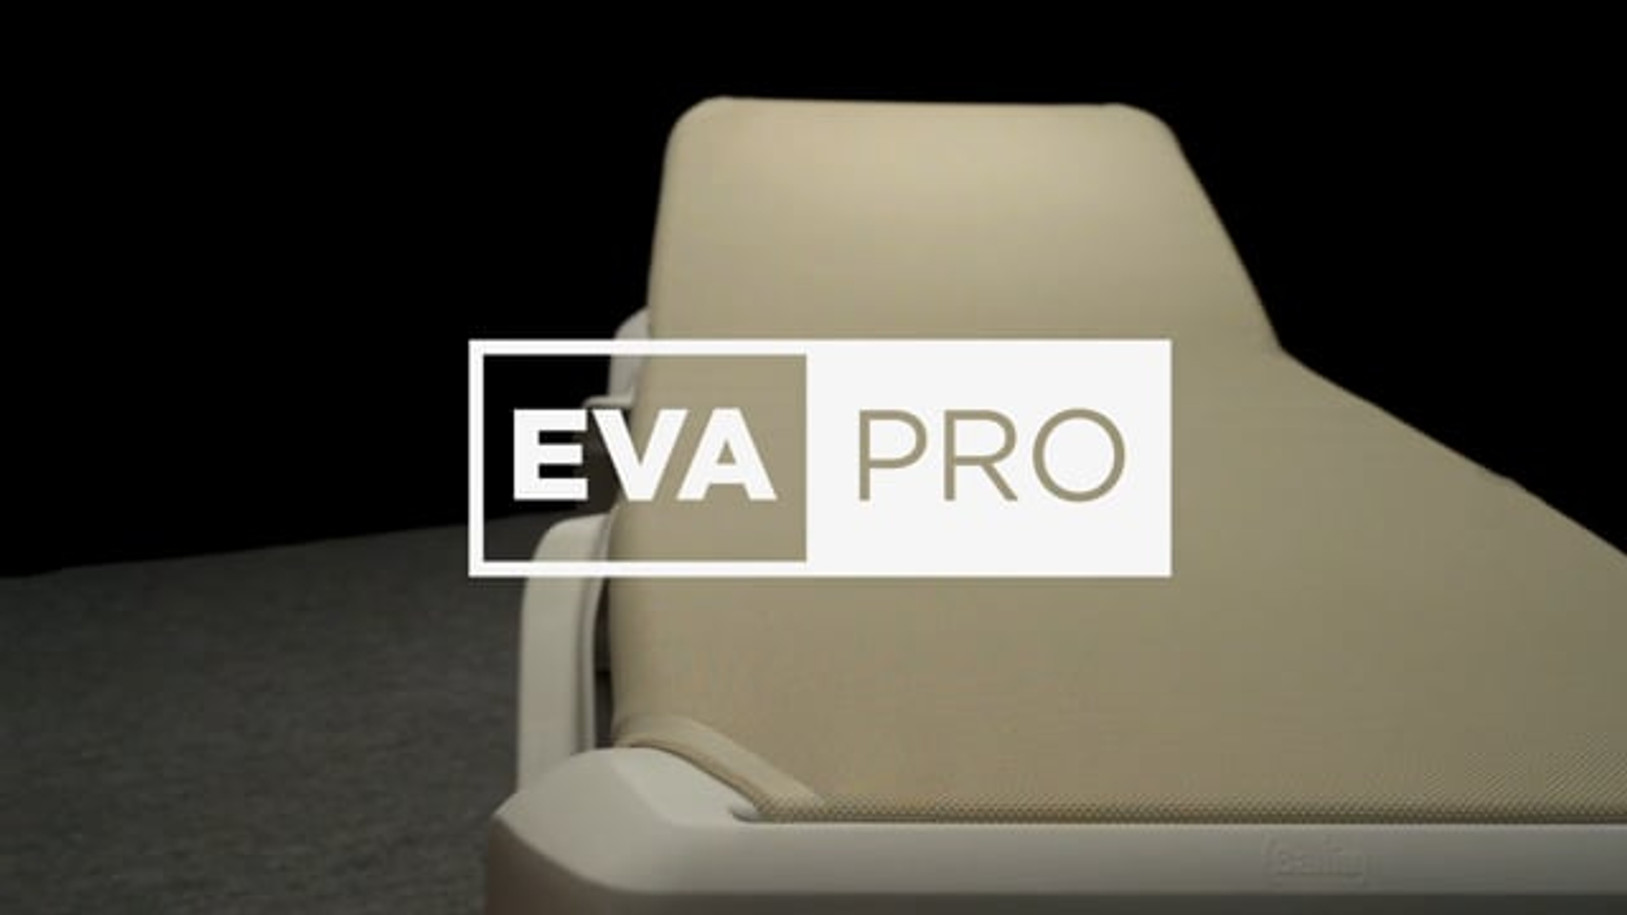 2017 - Balliu EVA PRO - Promotional video